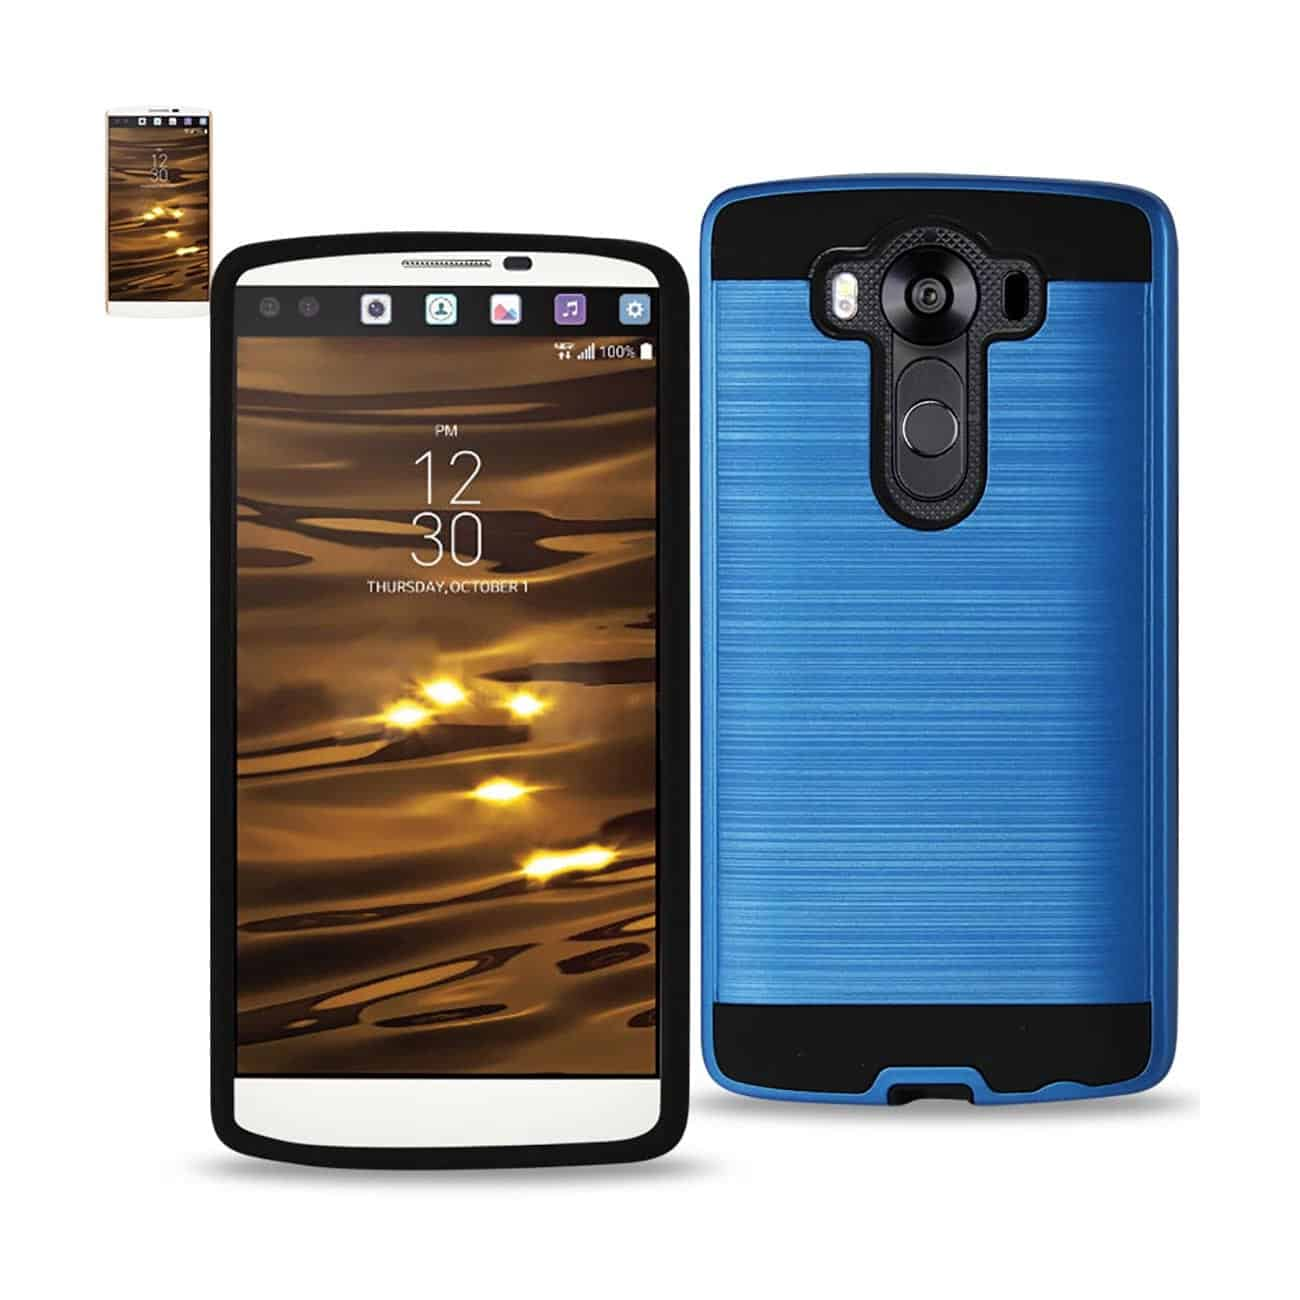 LG V10 HYBRID METAL BRUSHED TEXTURE CASE IN NAVY